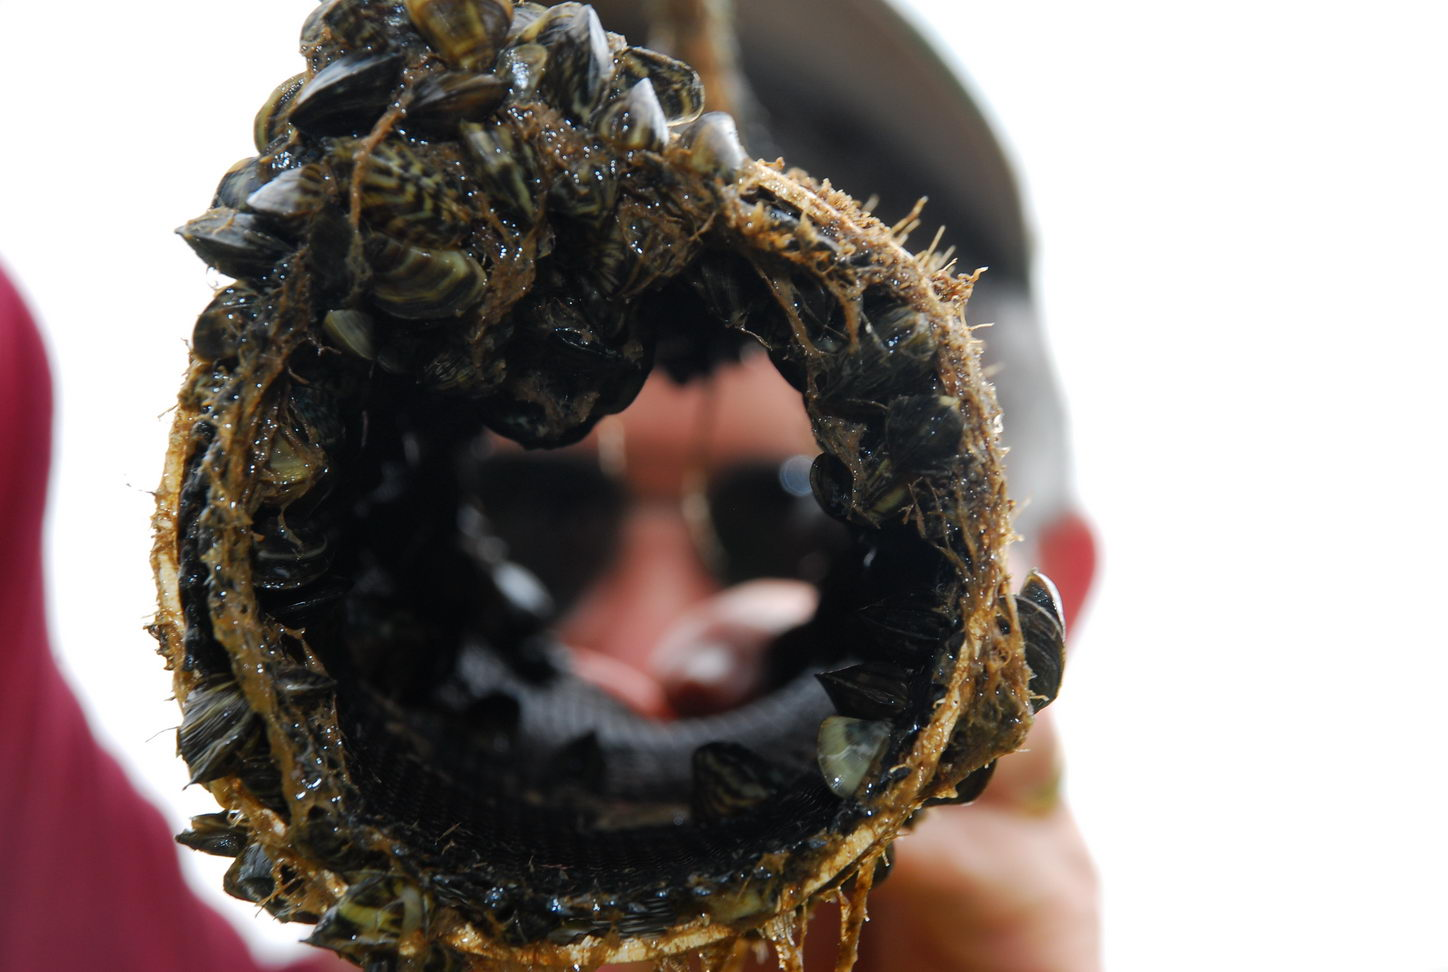 Zebra mussels can clog water pipes, cooling intakes on boat motors, and almost anything else left in the water in infested lakes. Image by Larry D. Hodge